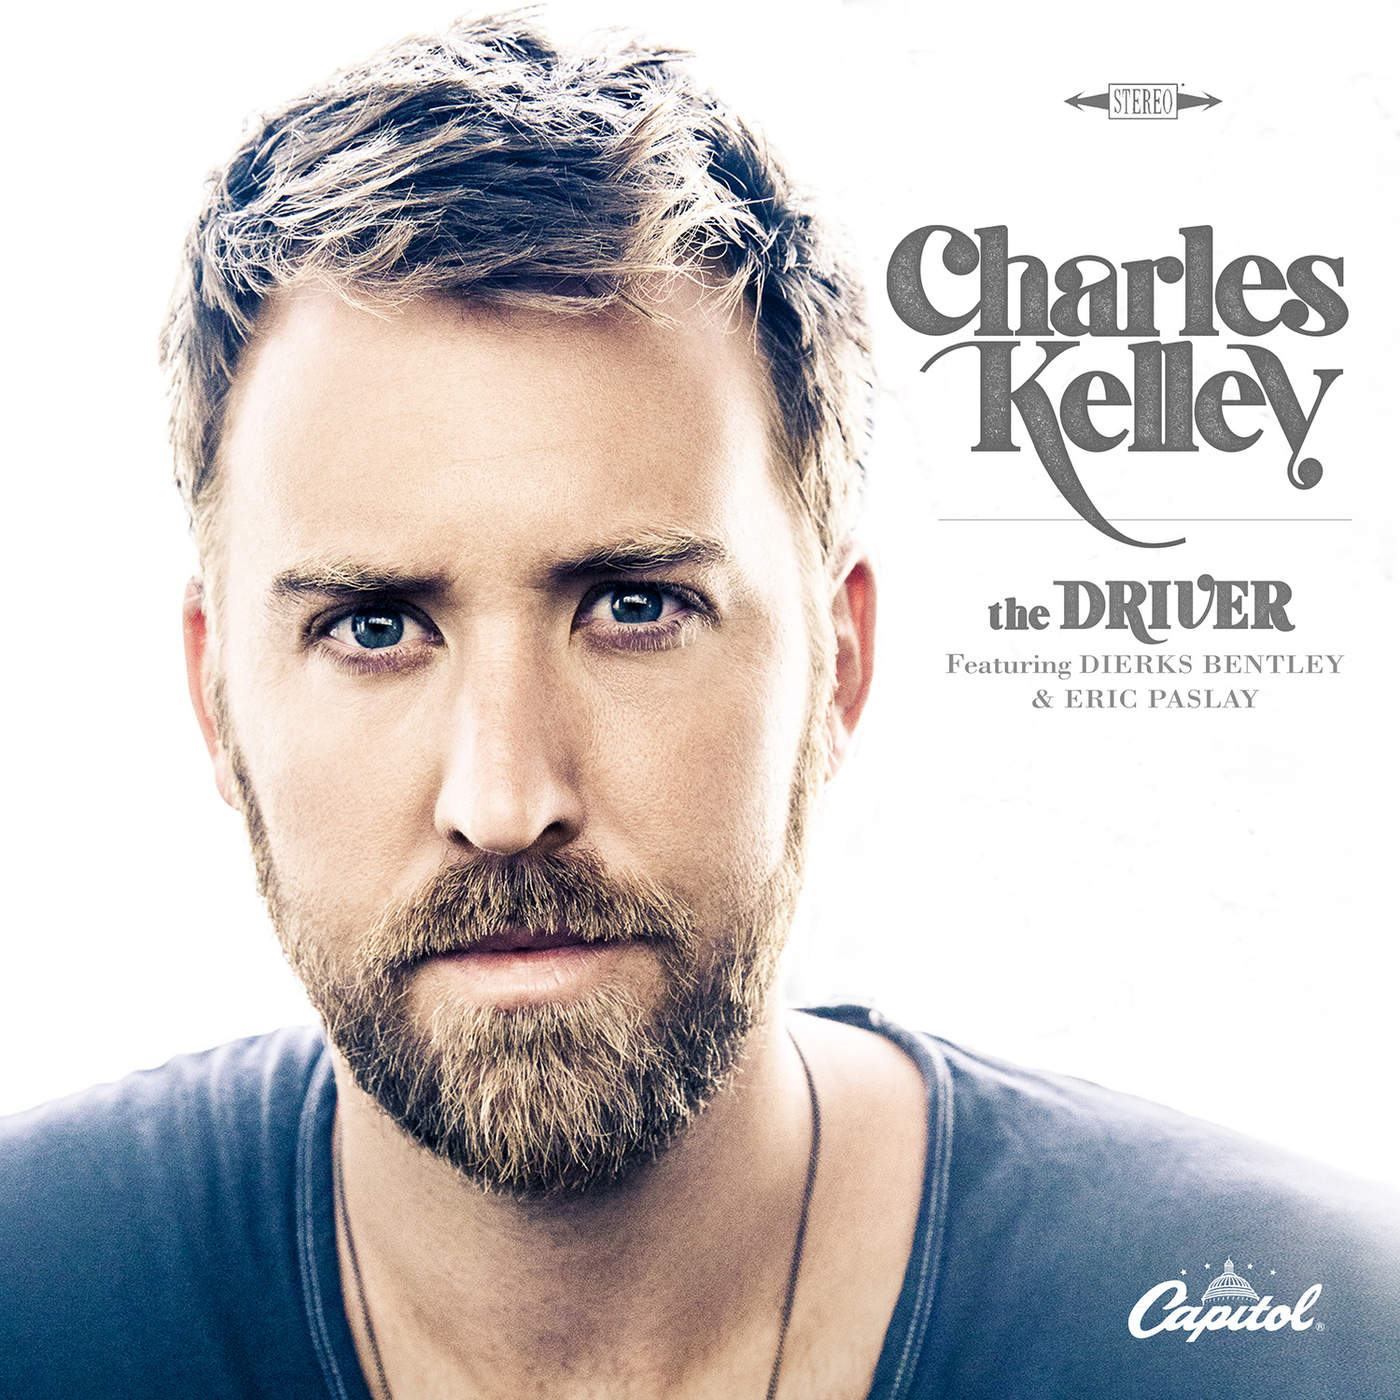 The Driver (feat. Dierks Bentley & Eric Paslay)